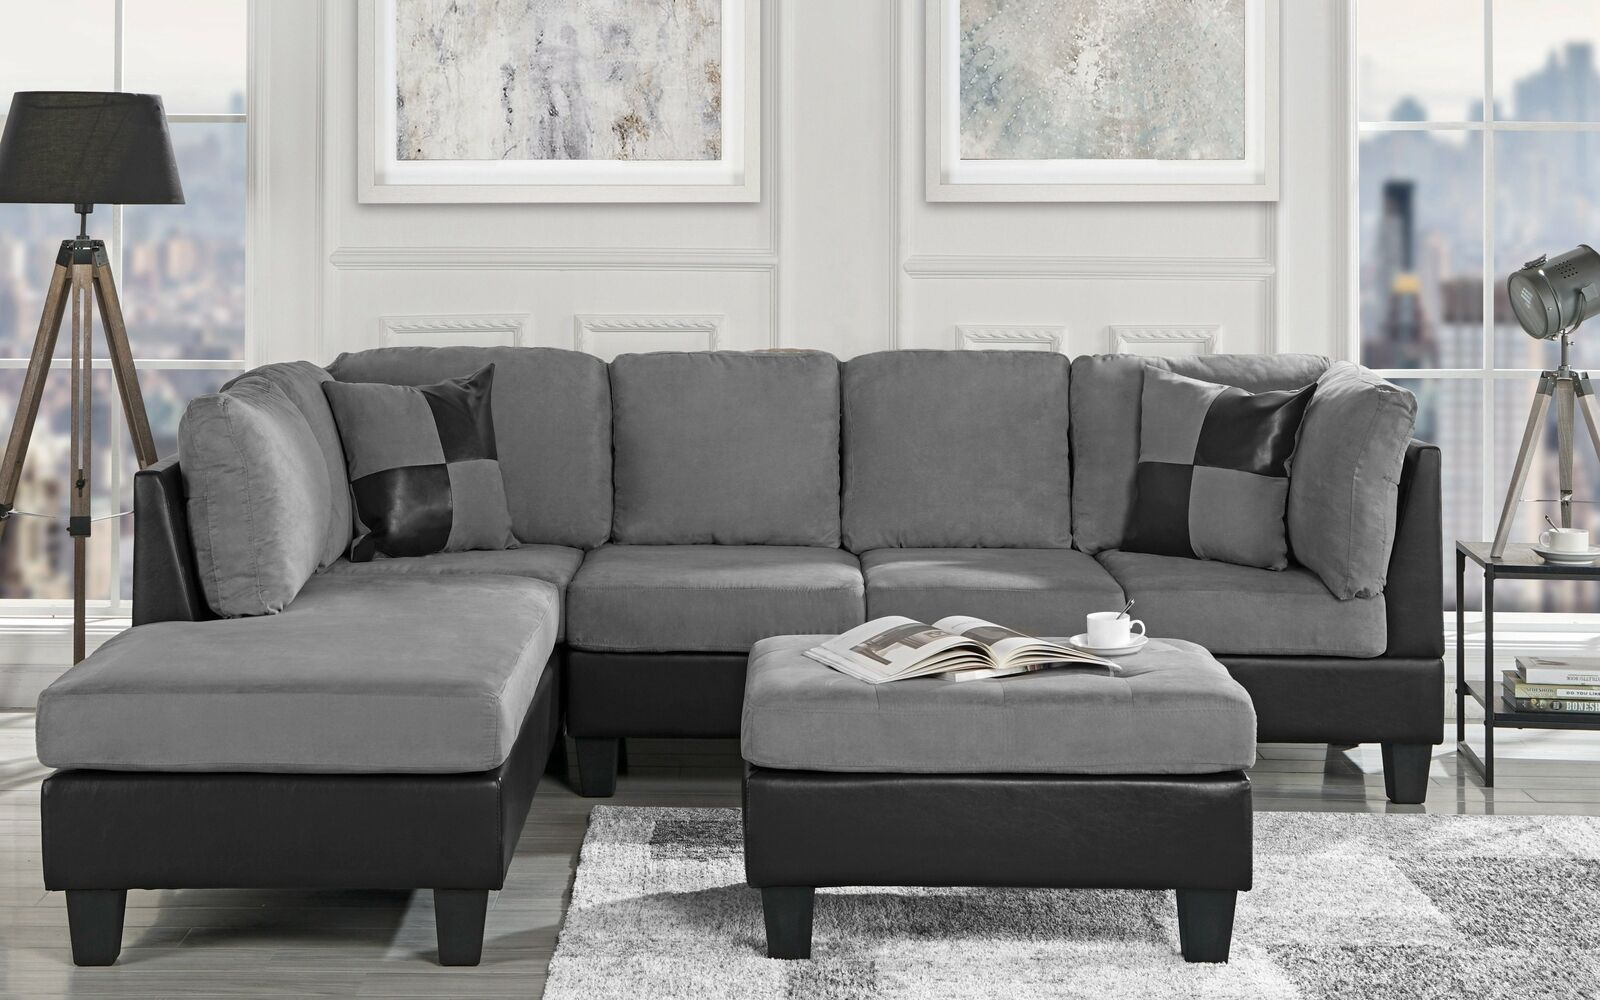 3pc Hazelnut Sectional Sofa Microfiber Faux Leather Ottoman Reversible Chaise For Sale Online Ebay